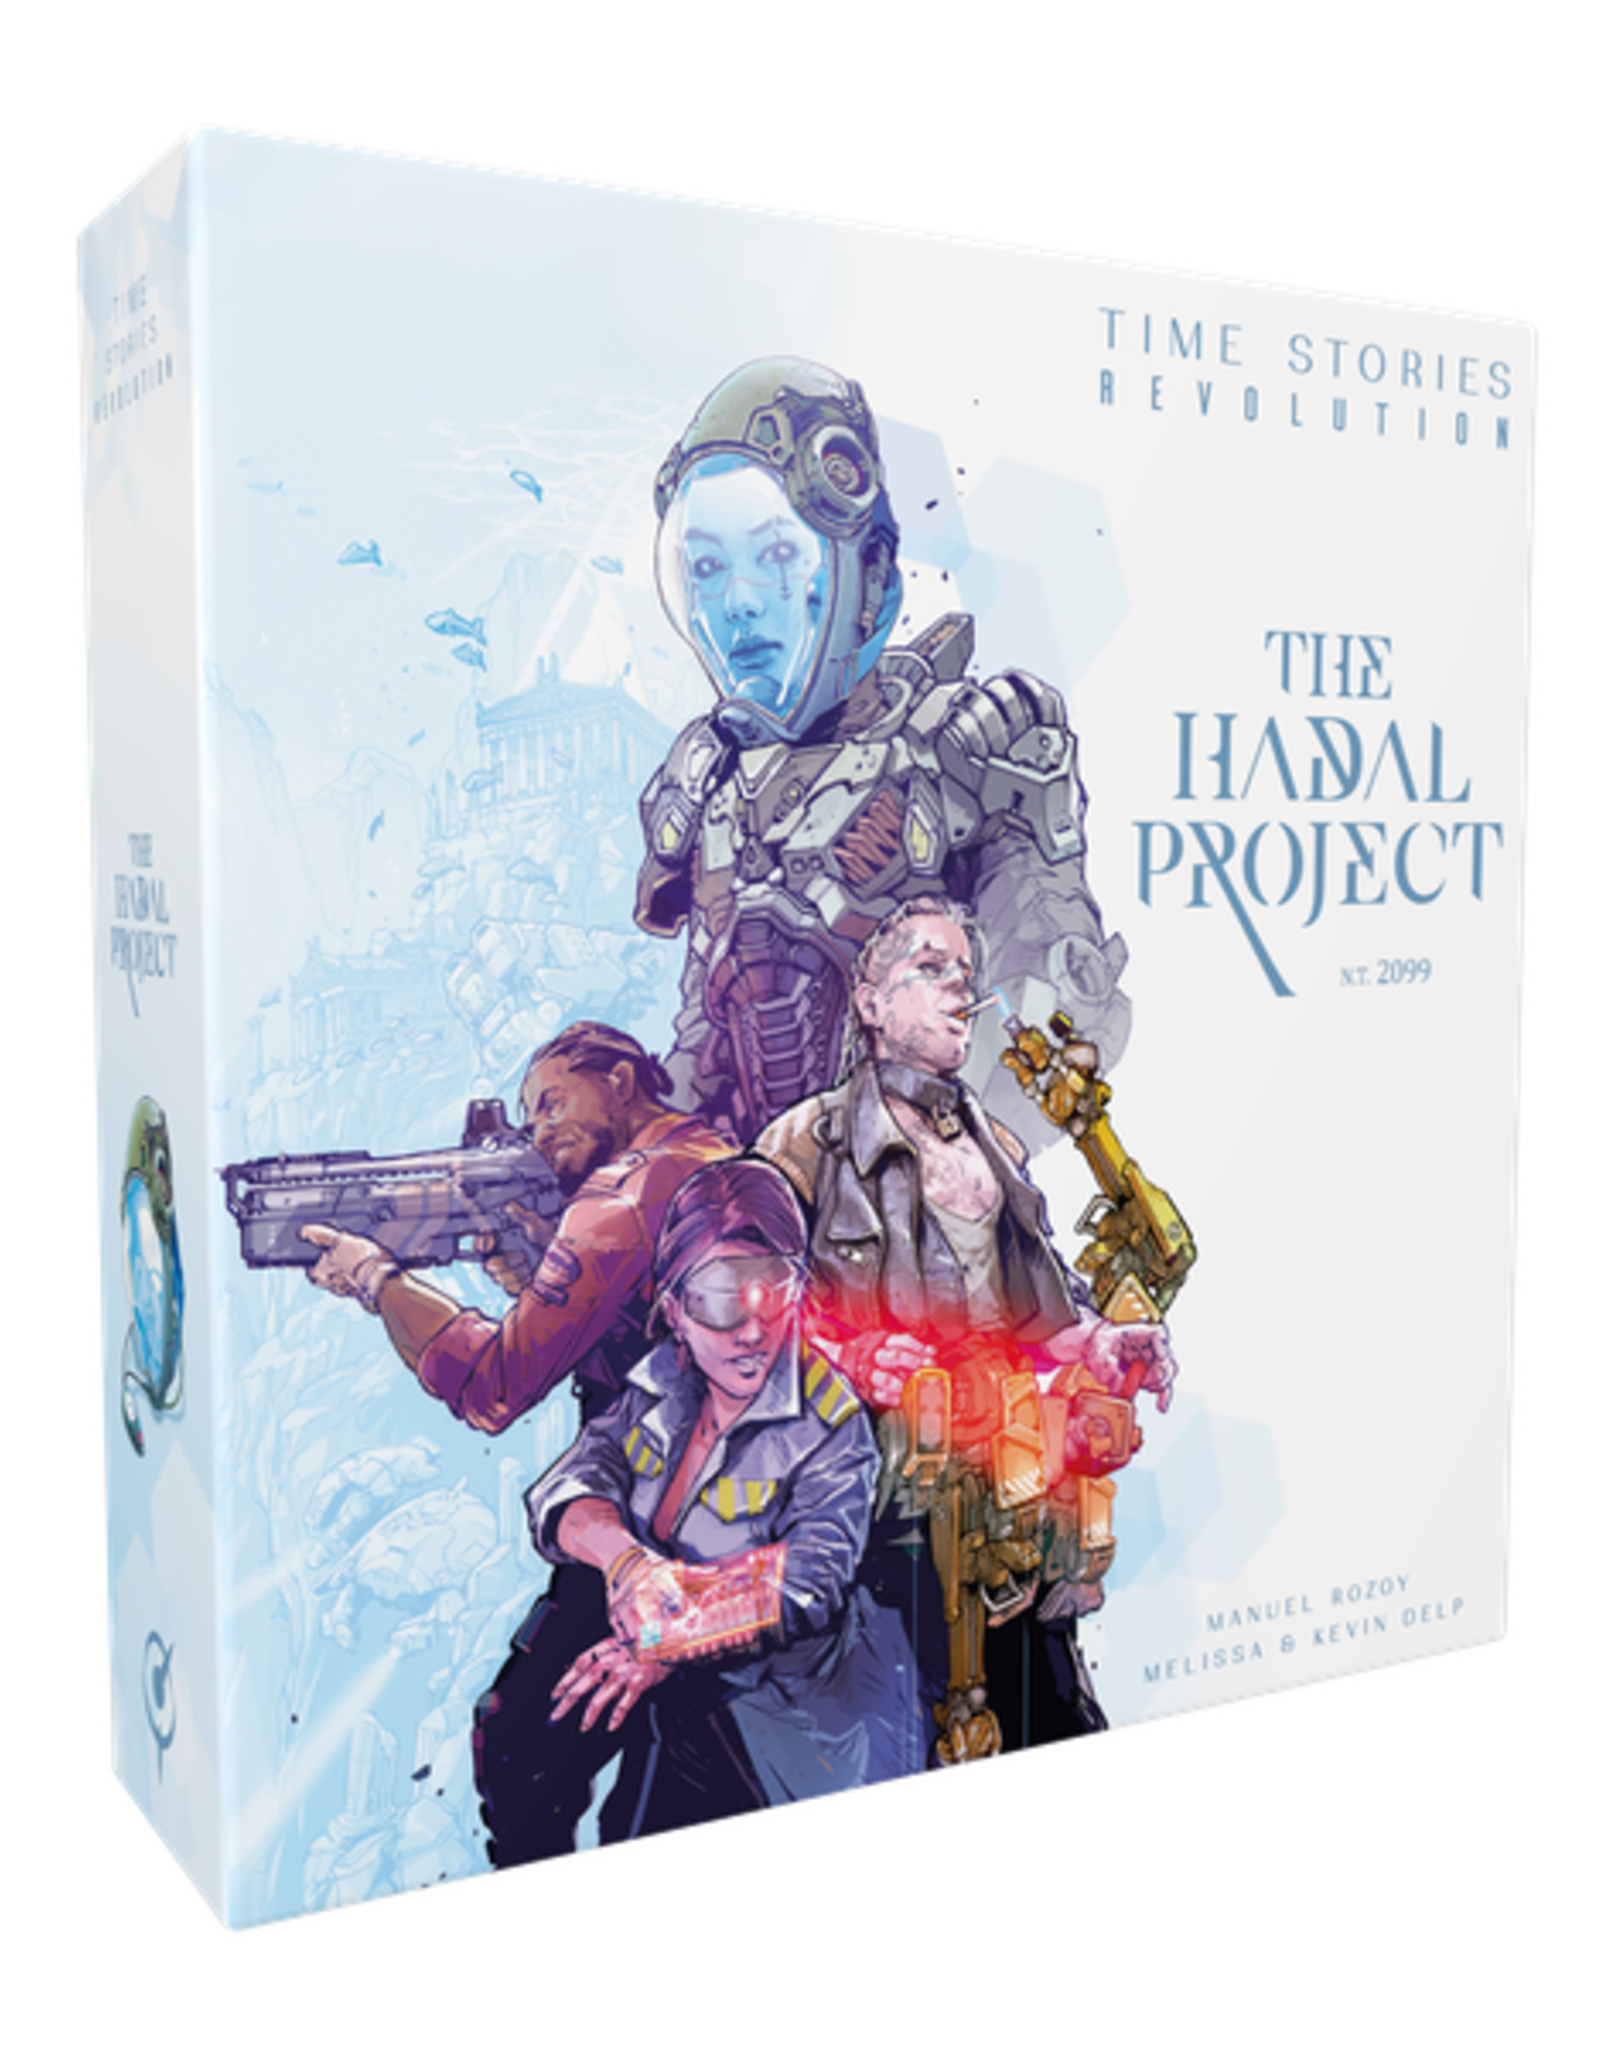 Space Cowboys Time Stories Revolution: the Hadal Project (EN)